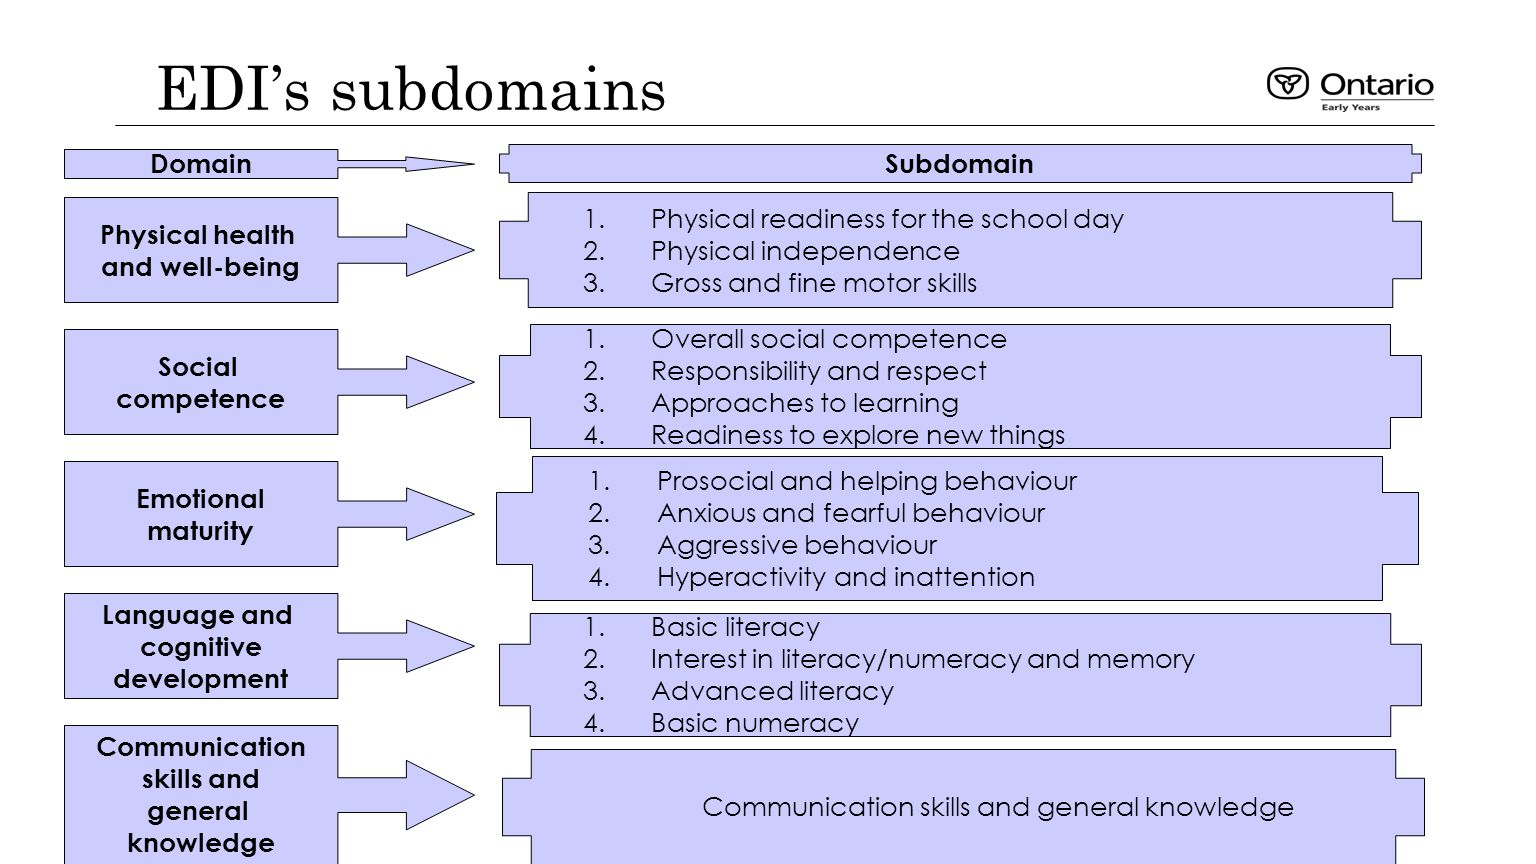 EDI's subdomains Physical health and well-being Language and cognitive development Social competence Communication skills and general knowledge Emotional maturity 1.Physical readiness for the school day 2.Physical independence 3.Gross and fine motor skills 1.Overall social competence 2.Responsibility and respect 3.Approaches to learning 4.Readiness to explore new things 1.Prosocial and helping behaviour 2.Anxious and fearful behaviour 3.Aggressive behaviour 4.Hyperactivity and inattention 1.Basic literacy 2.Interest in literacy/numeracy and memory 3.Advanced literacy 4.Basic numeracy Communication skills and general knowledge Domain Subdomain